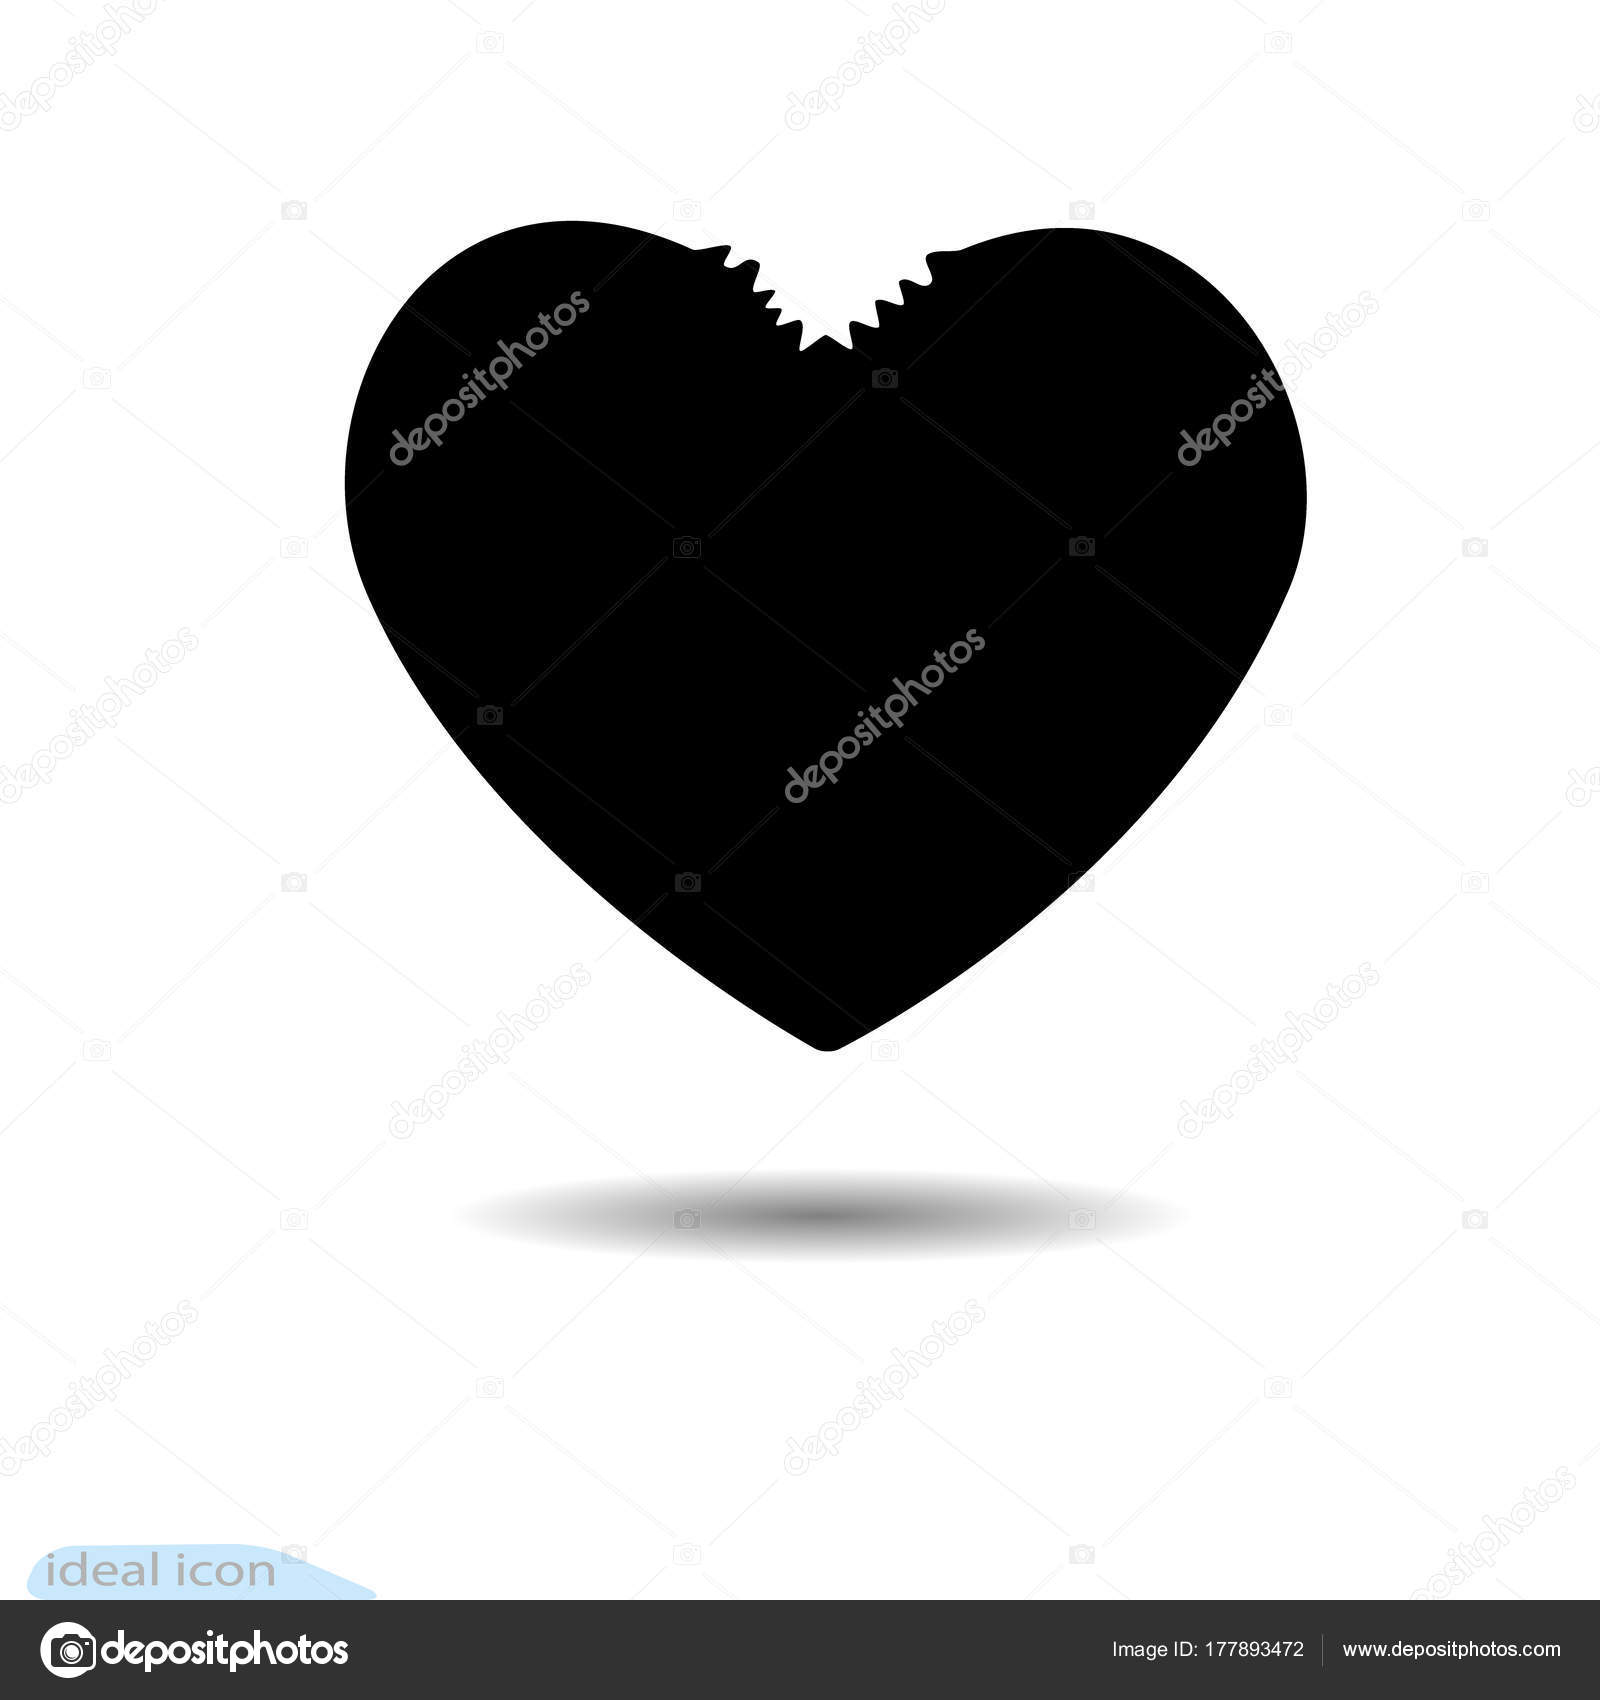 The heart icon a symbol of love valentine s day with teeth flat the heart icon a symbol of love valentine s day with teeth flat style biocorpaavc Images